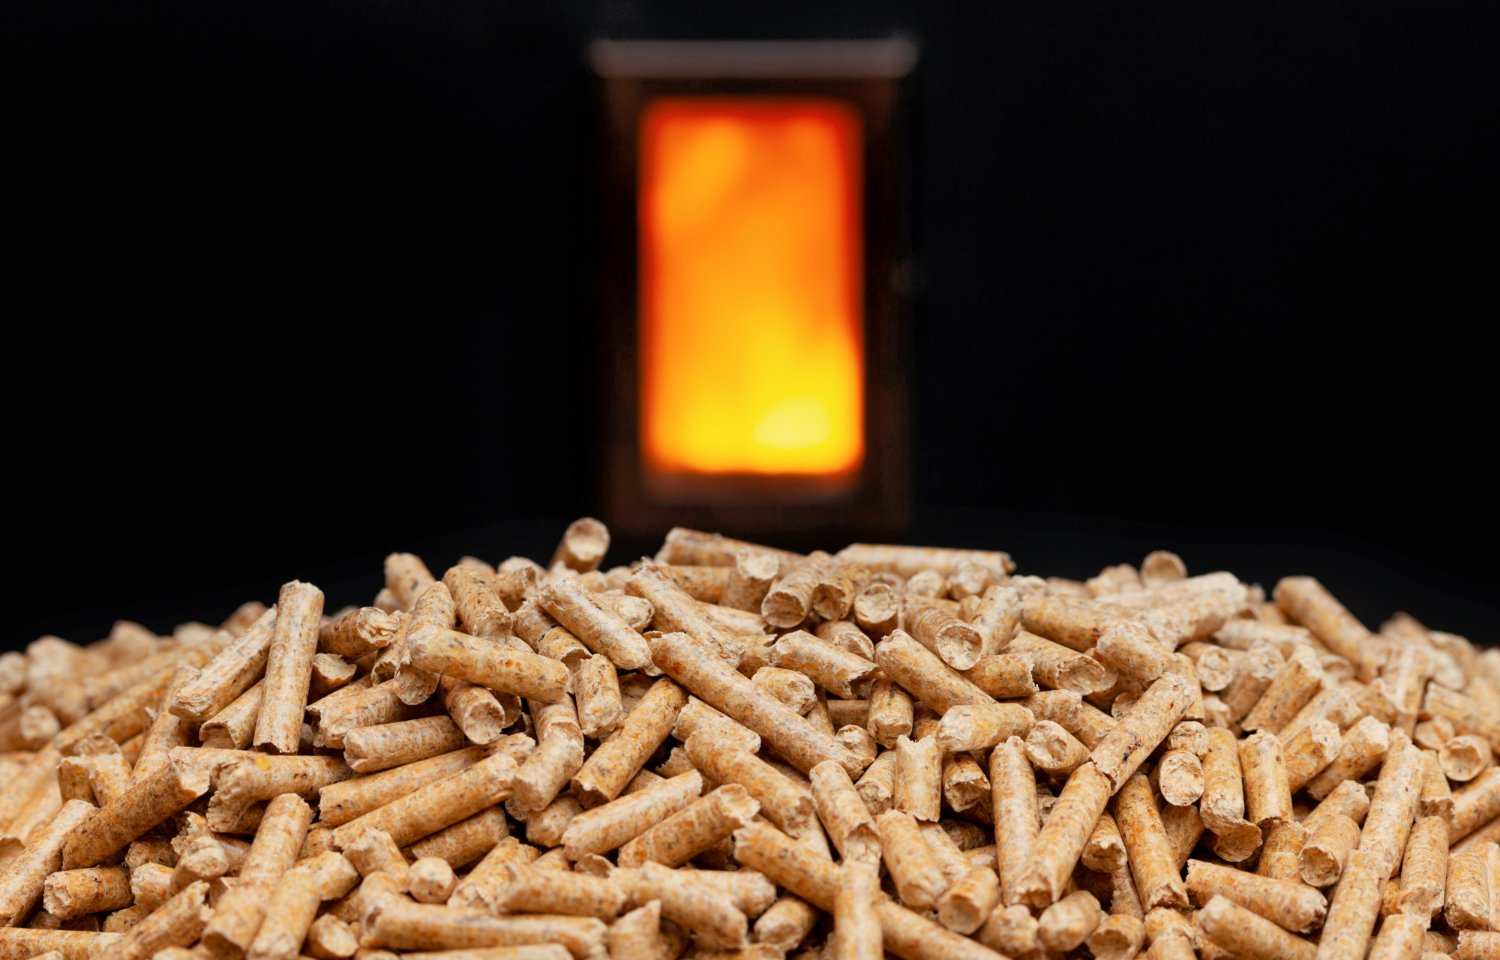 Fully Automated Wood Pellet Heating